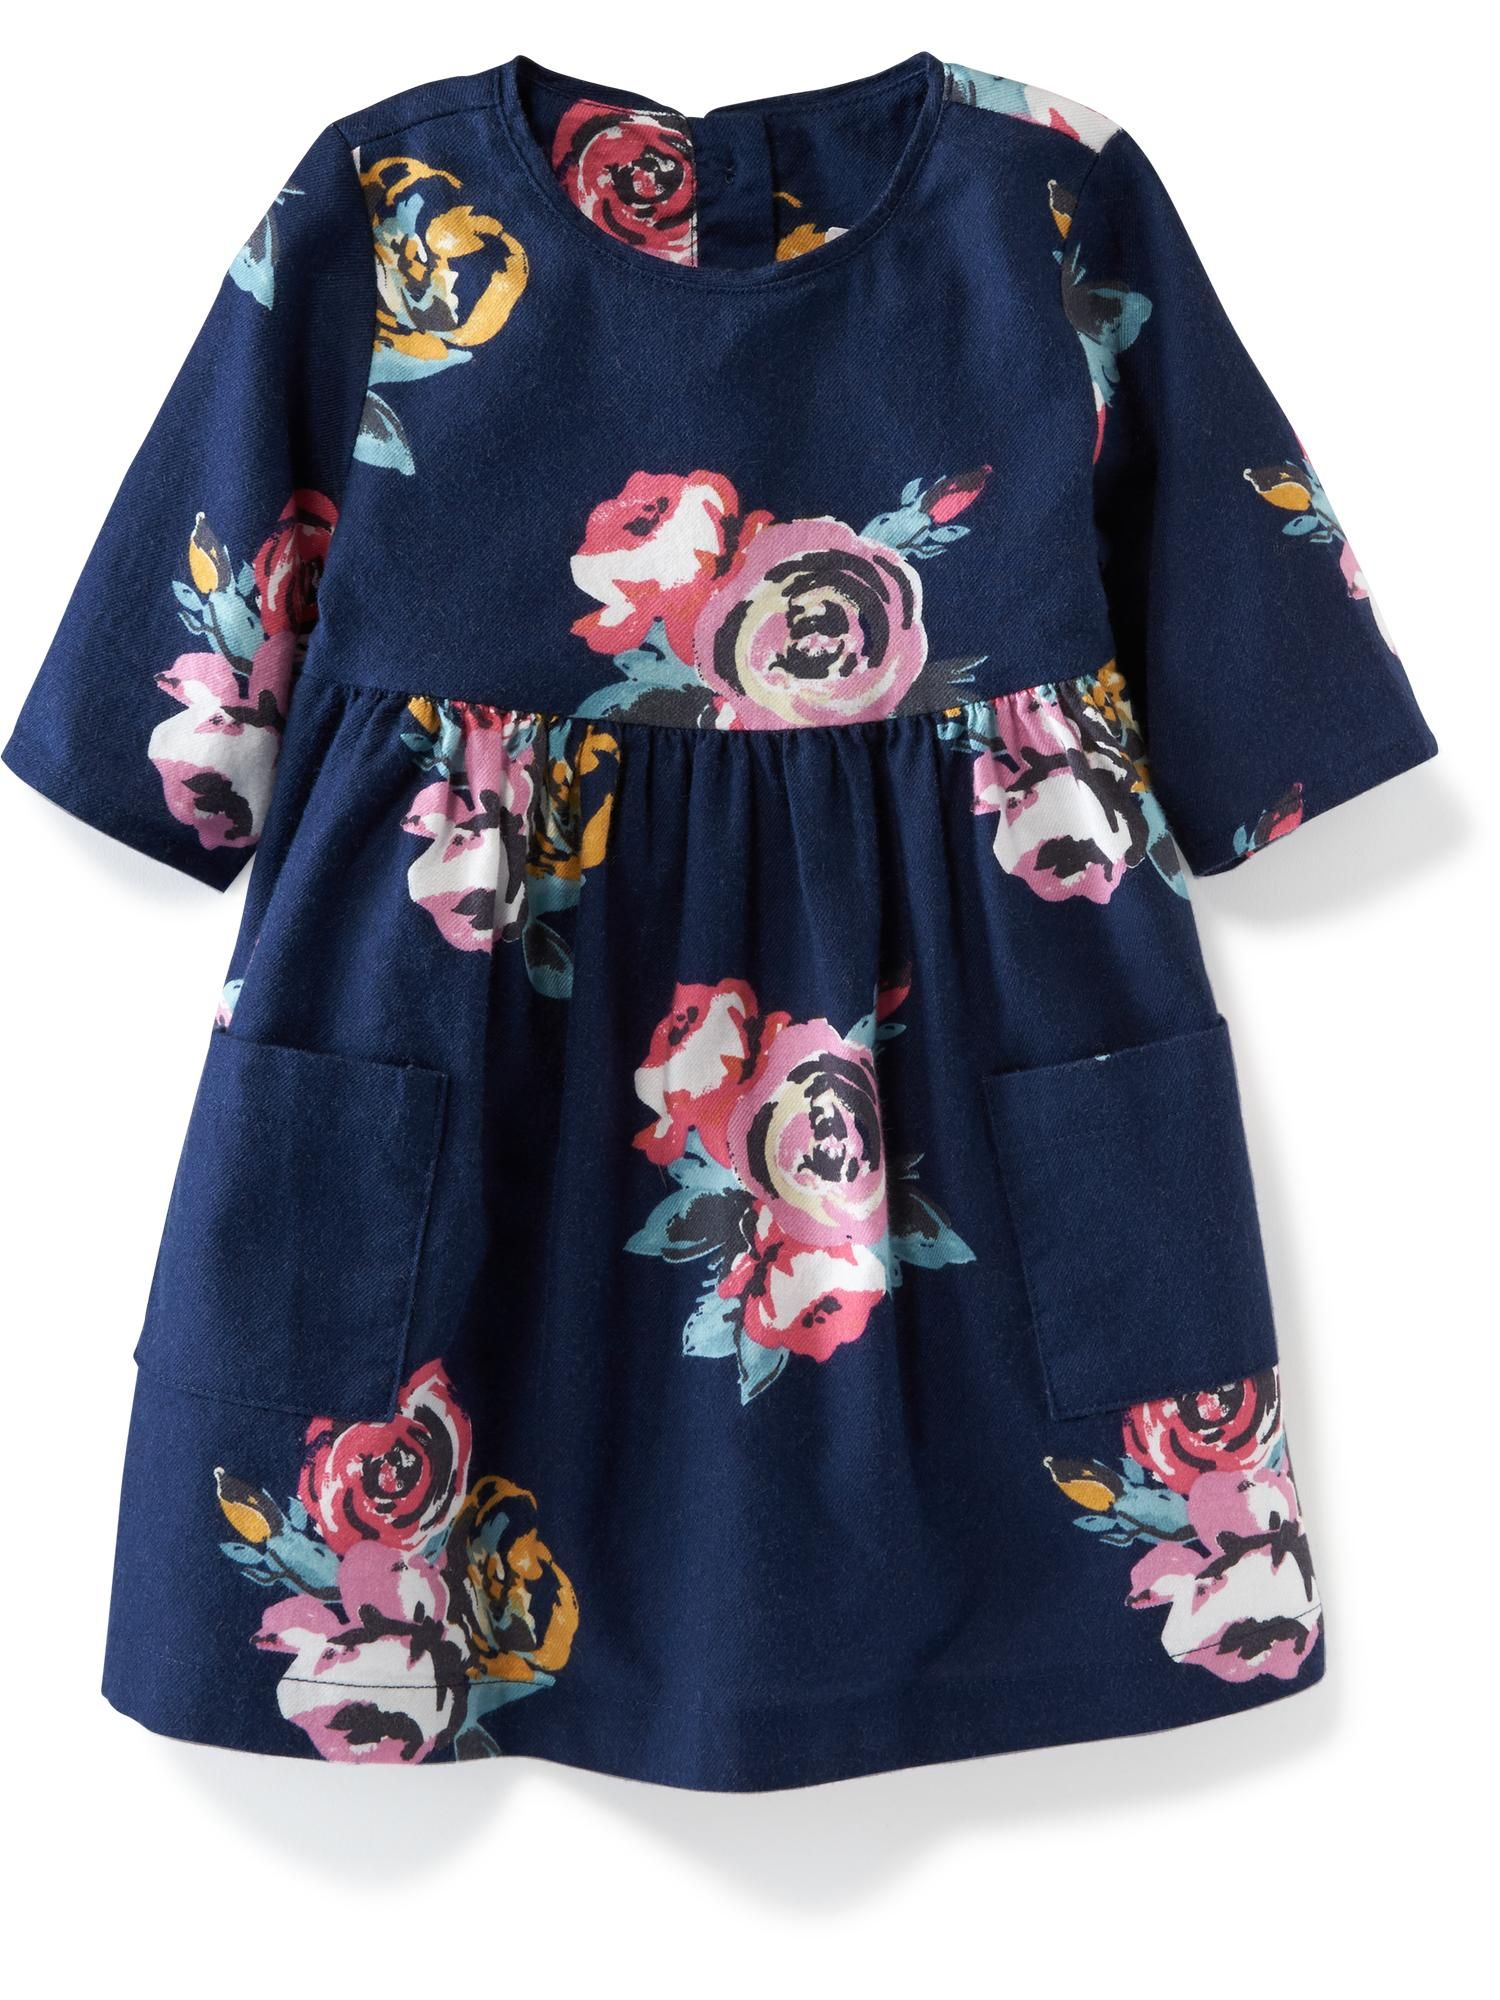 Double Pocket Twill Dress for Baby Old Navy